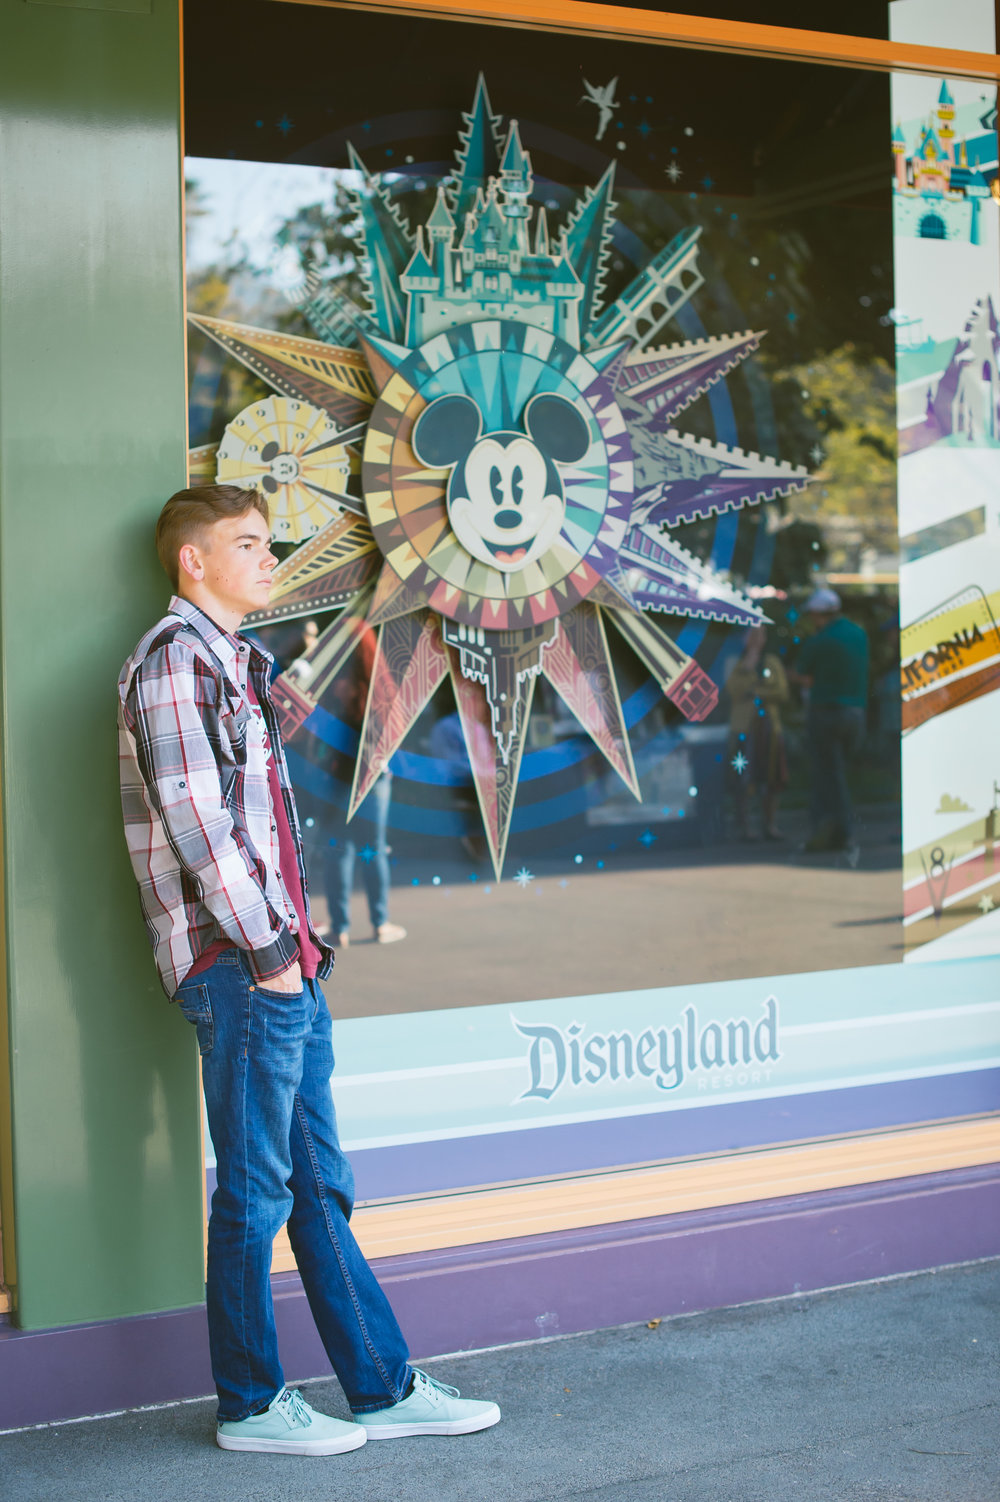 09Downtown Disney Senior Pictures.jpg